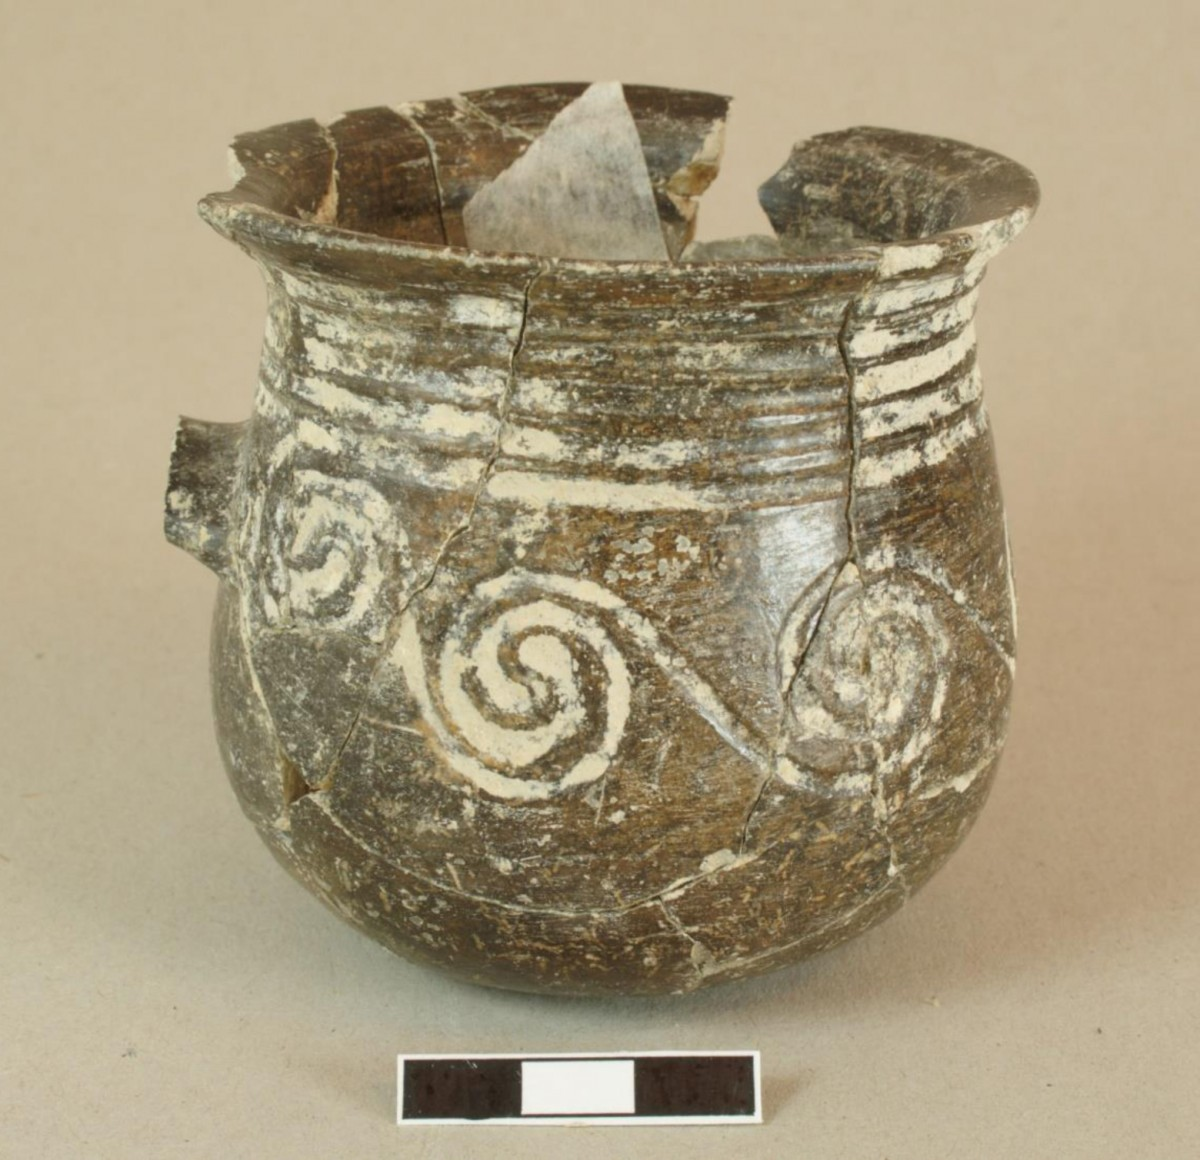 Fig. 1. One-handled cup with grooved decoration from Dhaskalio Phase C.